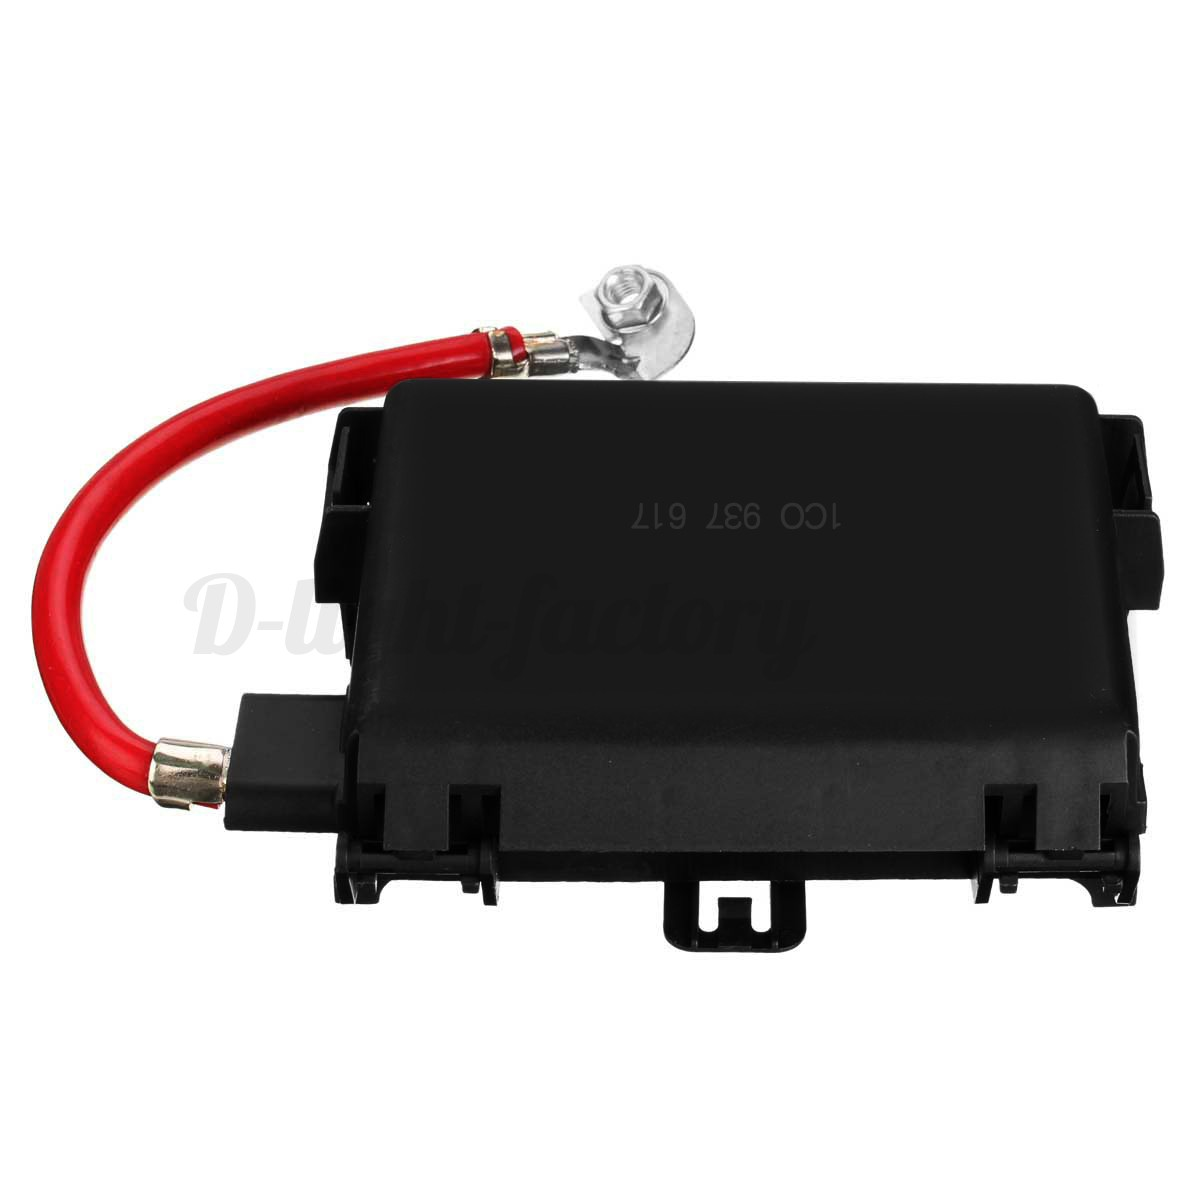 fuse box battery terminal for vw beetle golf jetta 2 0 1